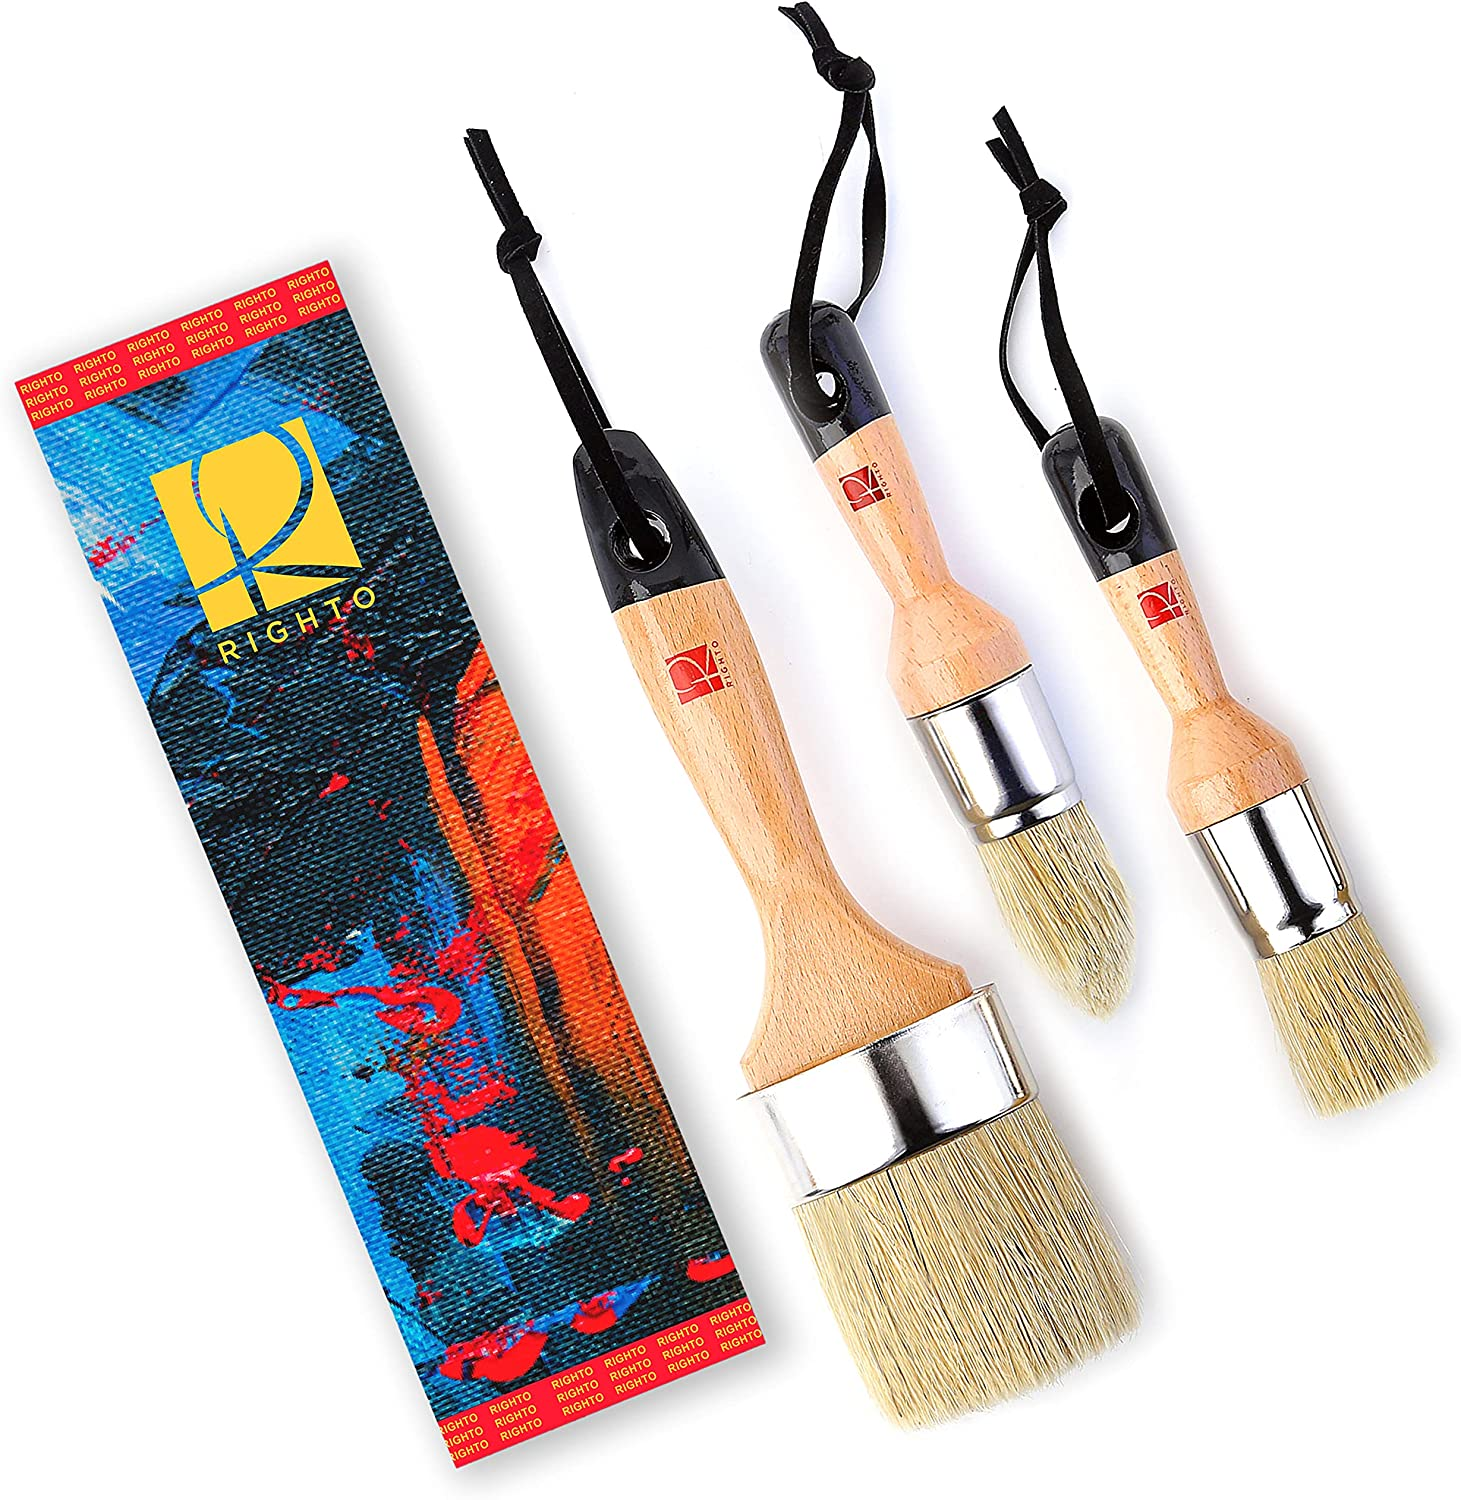 Professional Chalk Wax paint brush 3PC Large & Small Round Stencil Paint Brushes set for Furniture Painting, Compatible with Annie Sloan, Bb Frosch, Fusion Mineral, Dixi Belle, and Waverly Chalk Paint